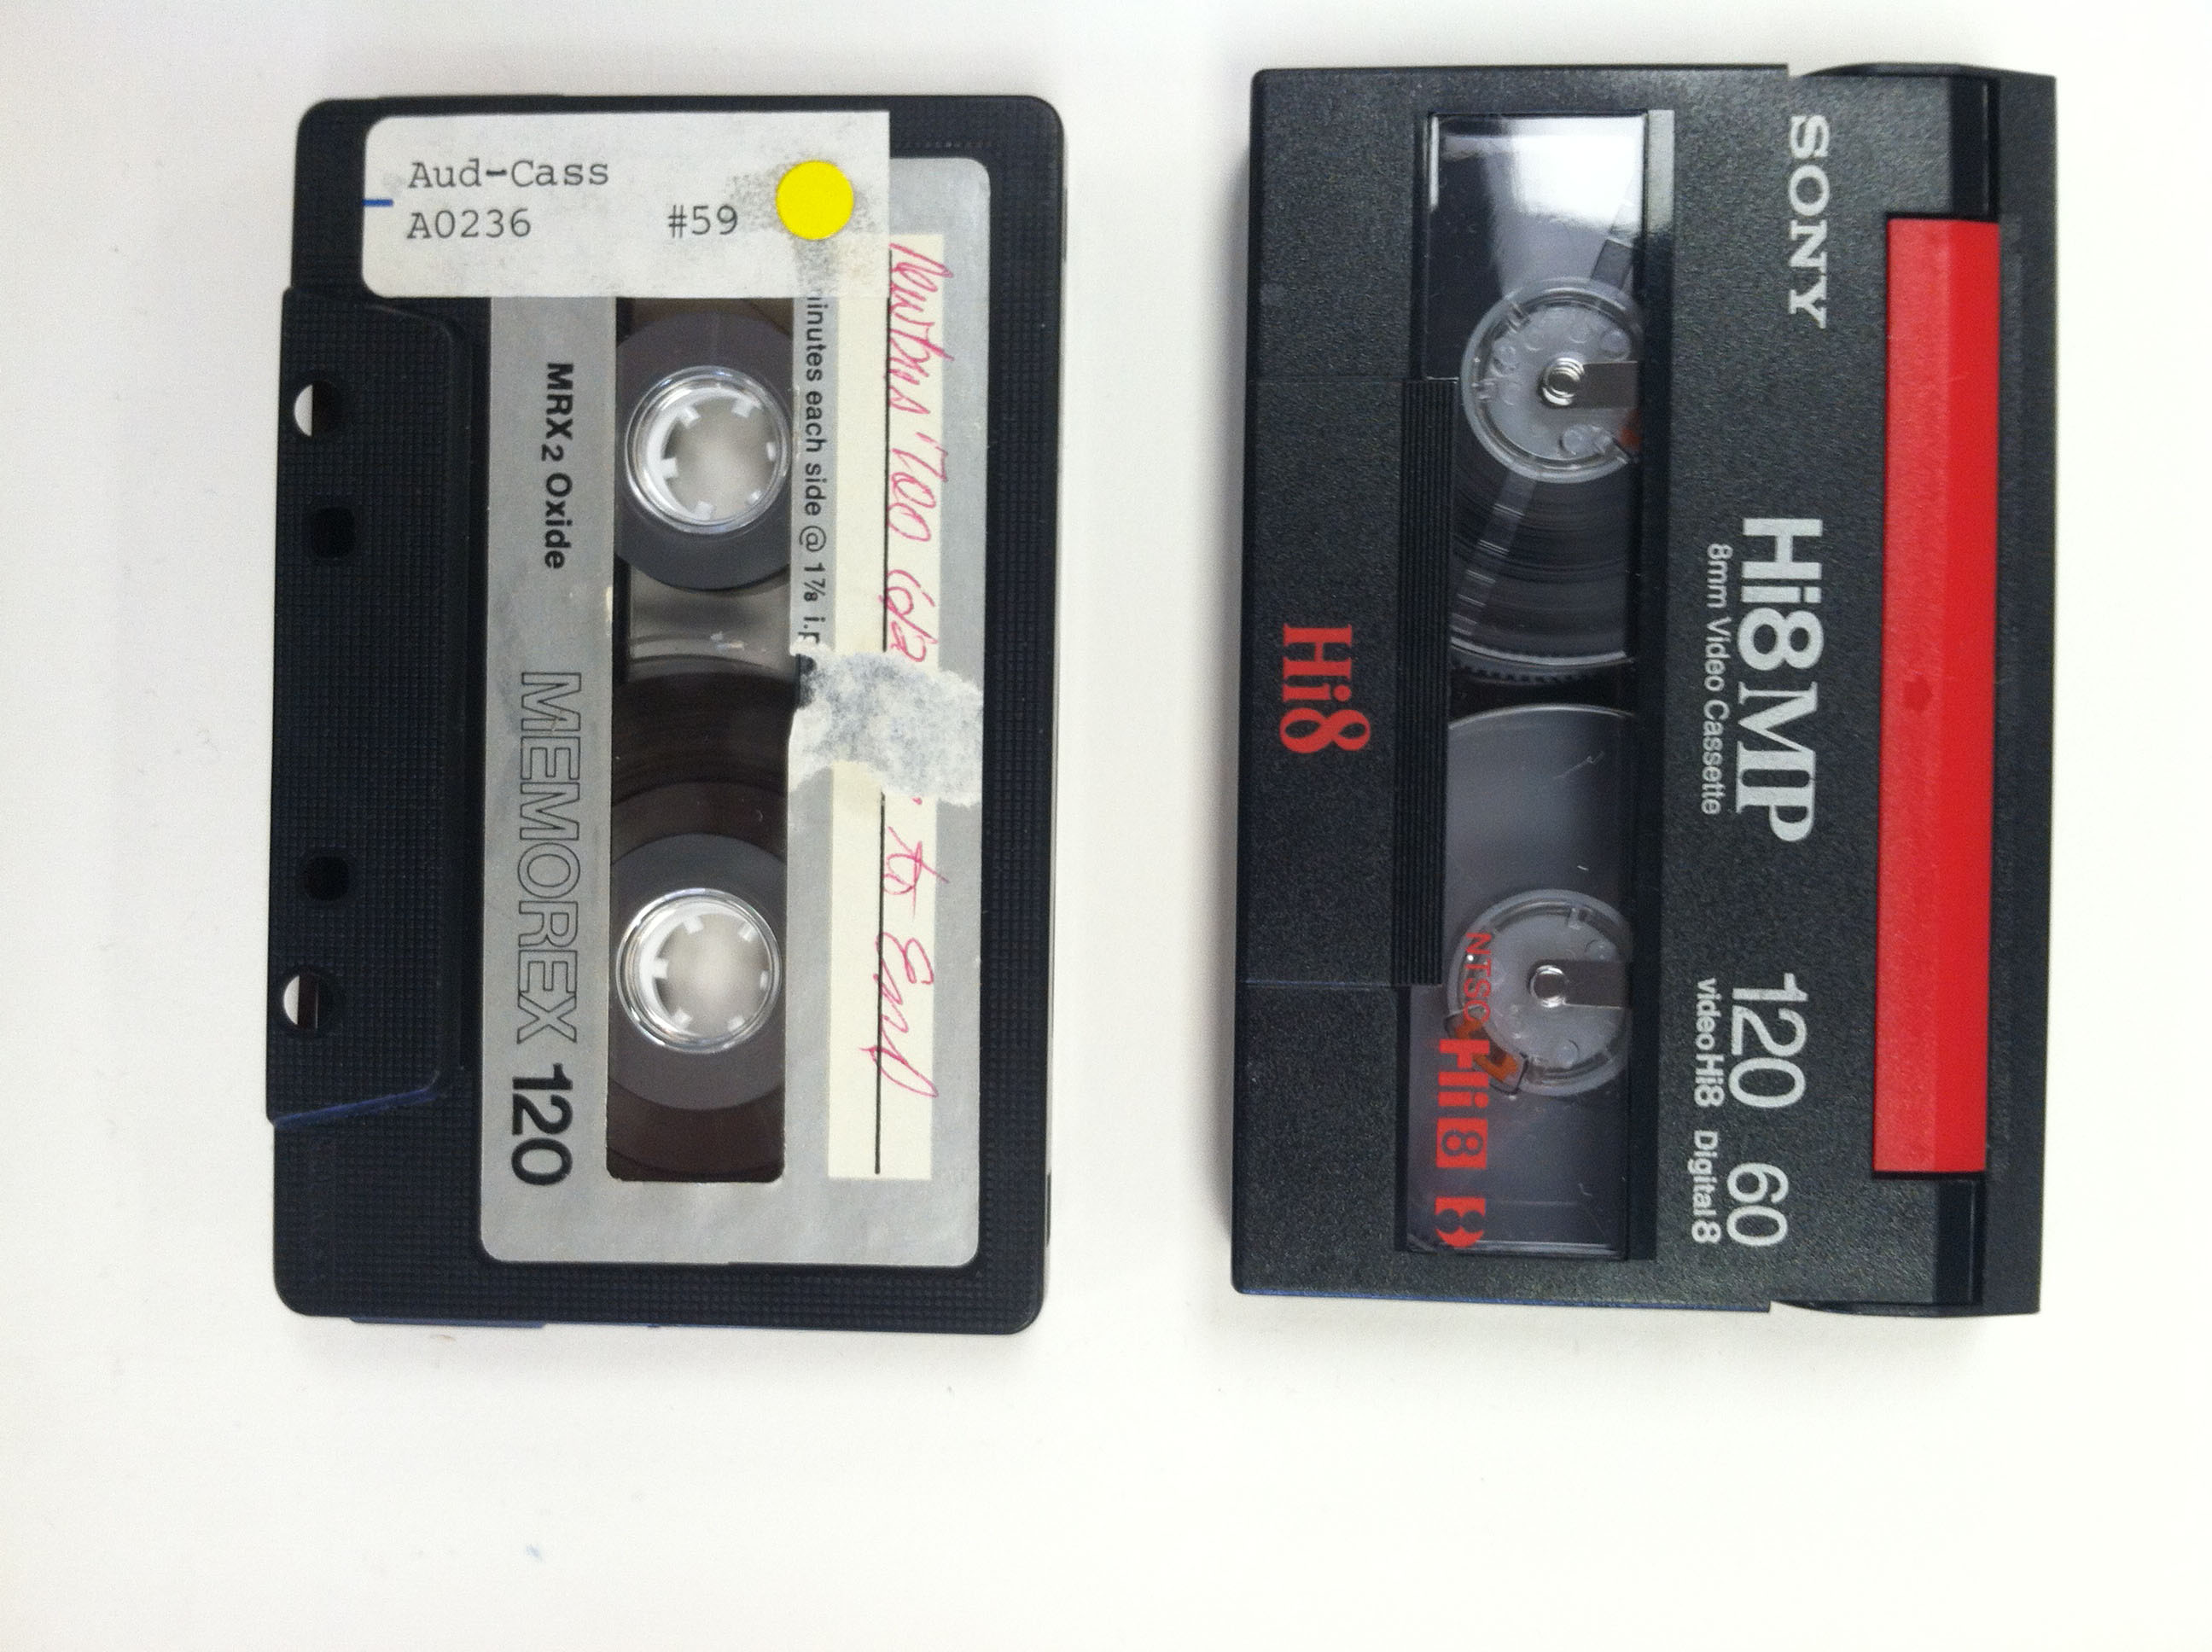 Hi 8 vs Audiocassette for size